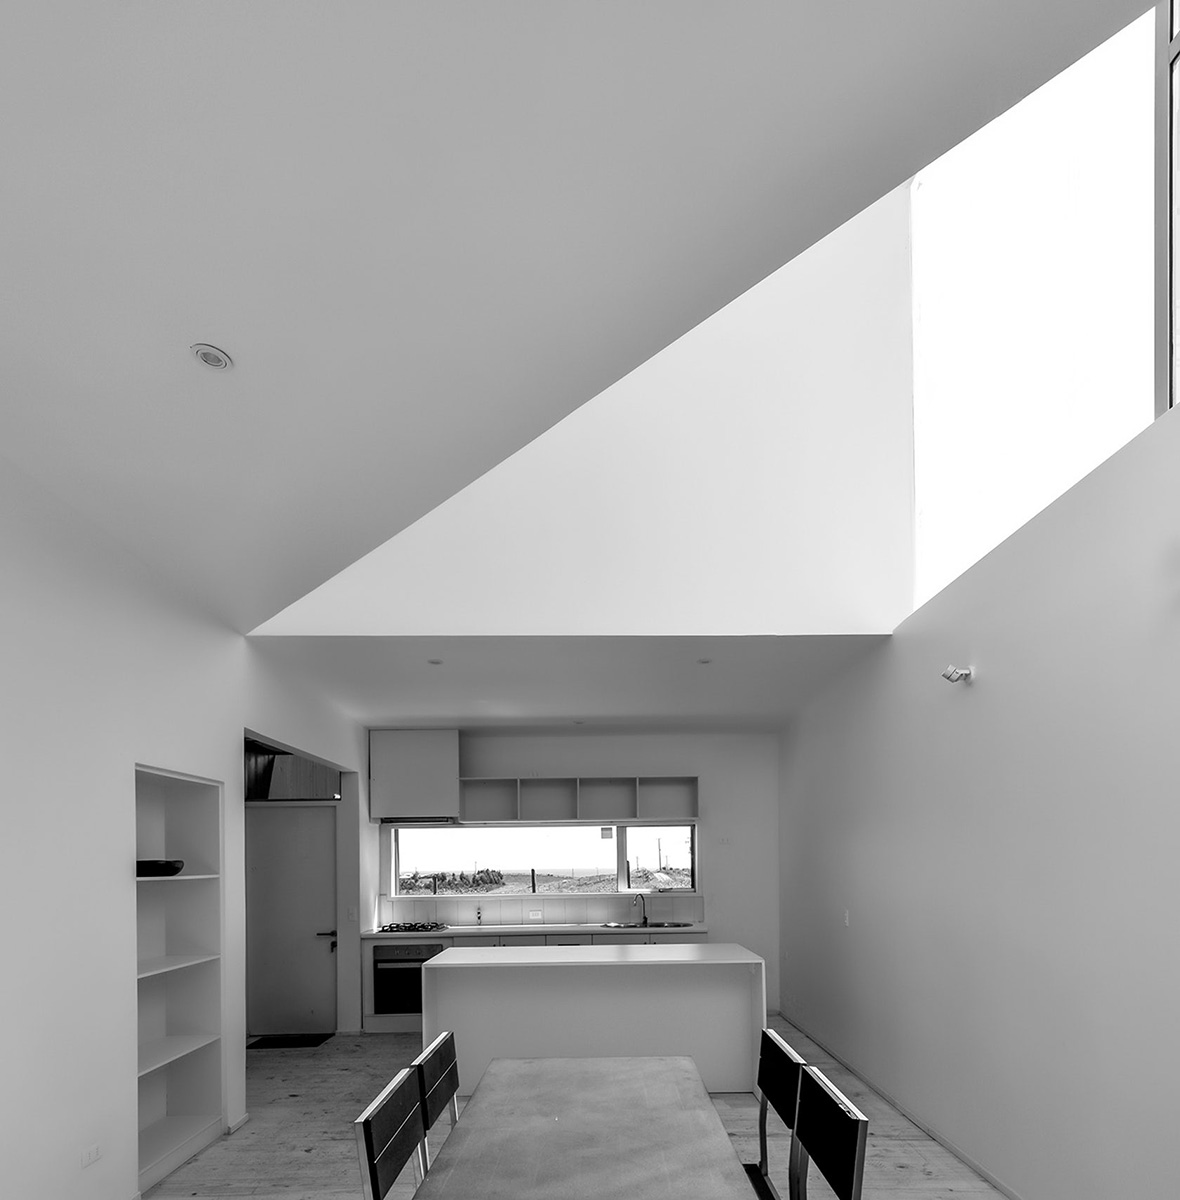 09-arquitectura-chilena-house-on-the-top-cristian-axl